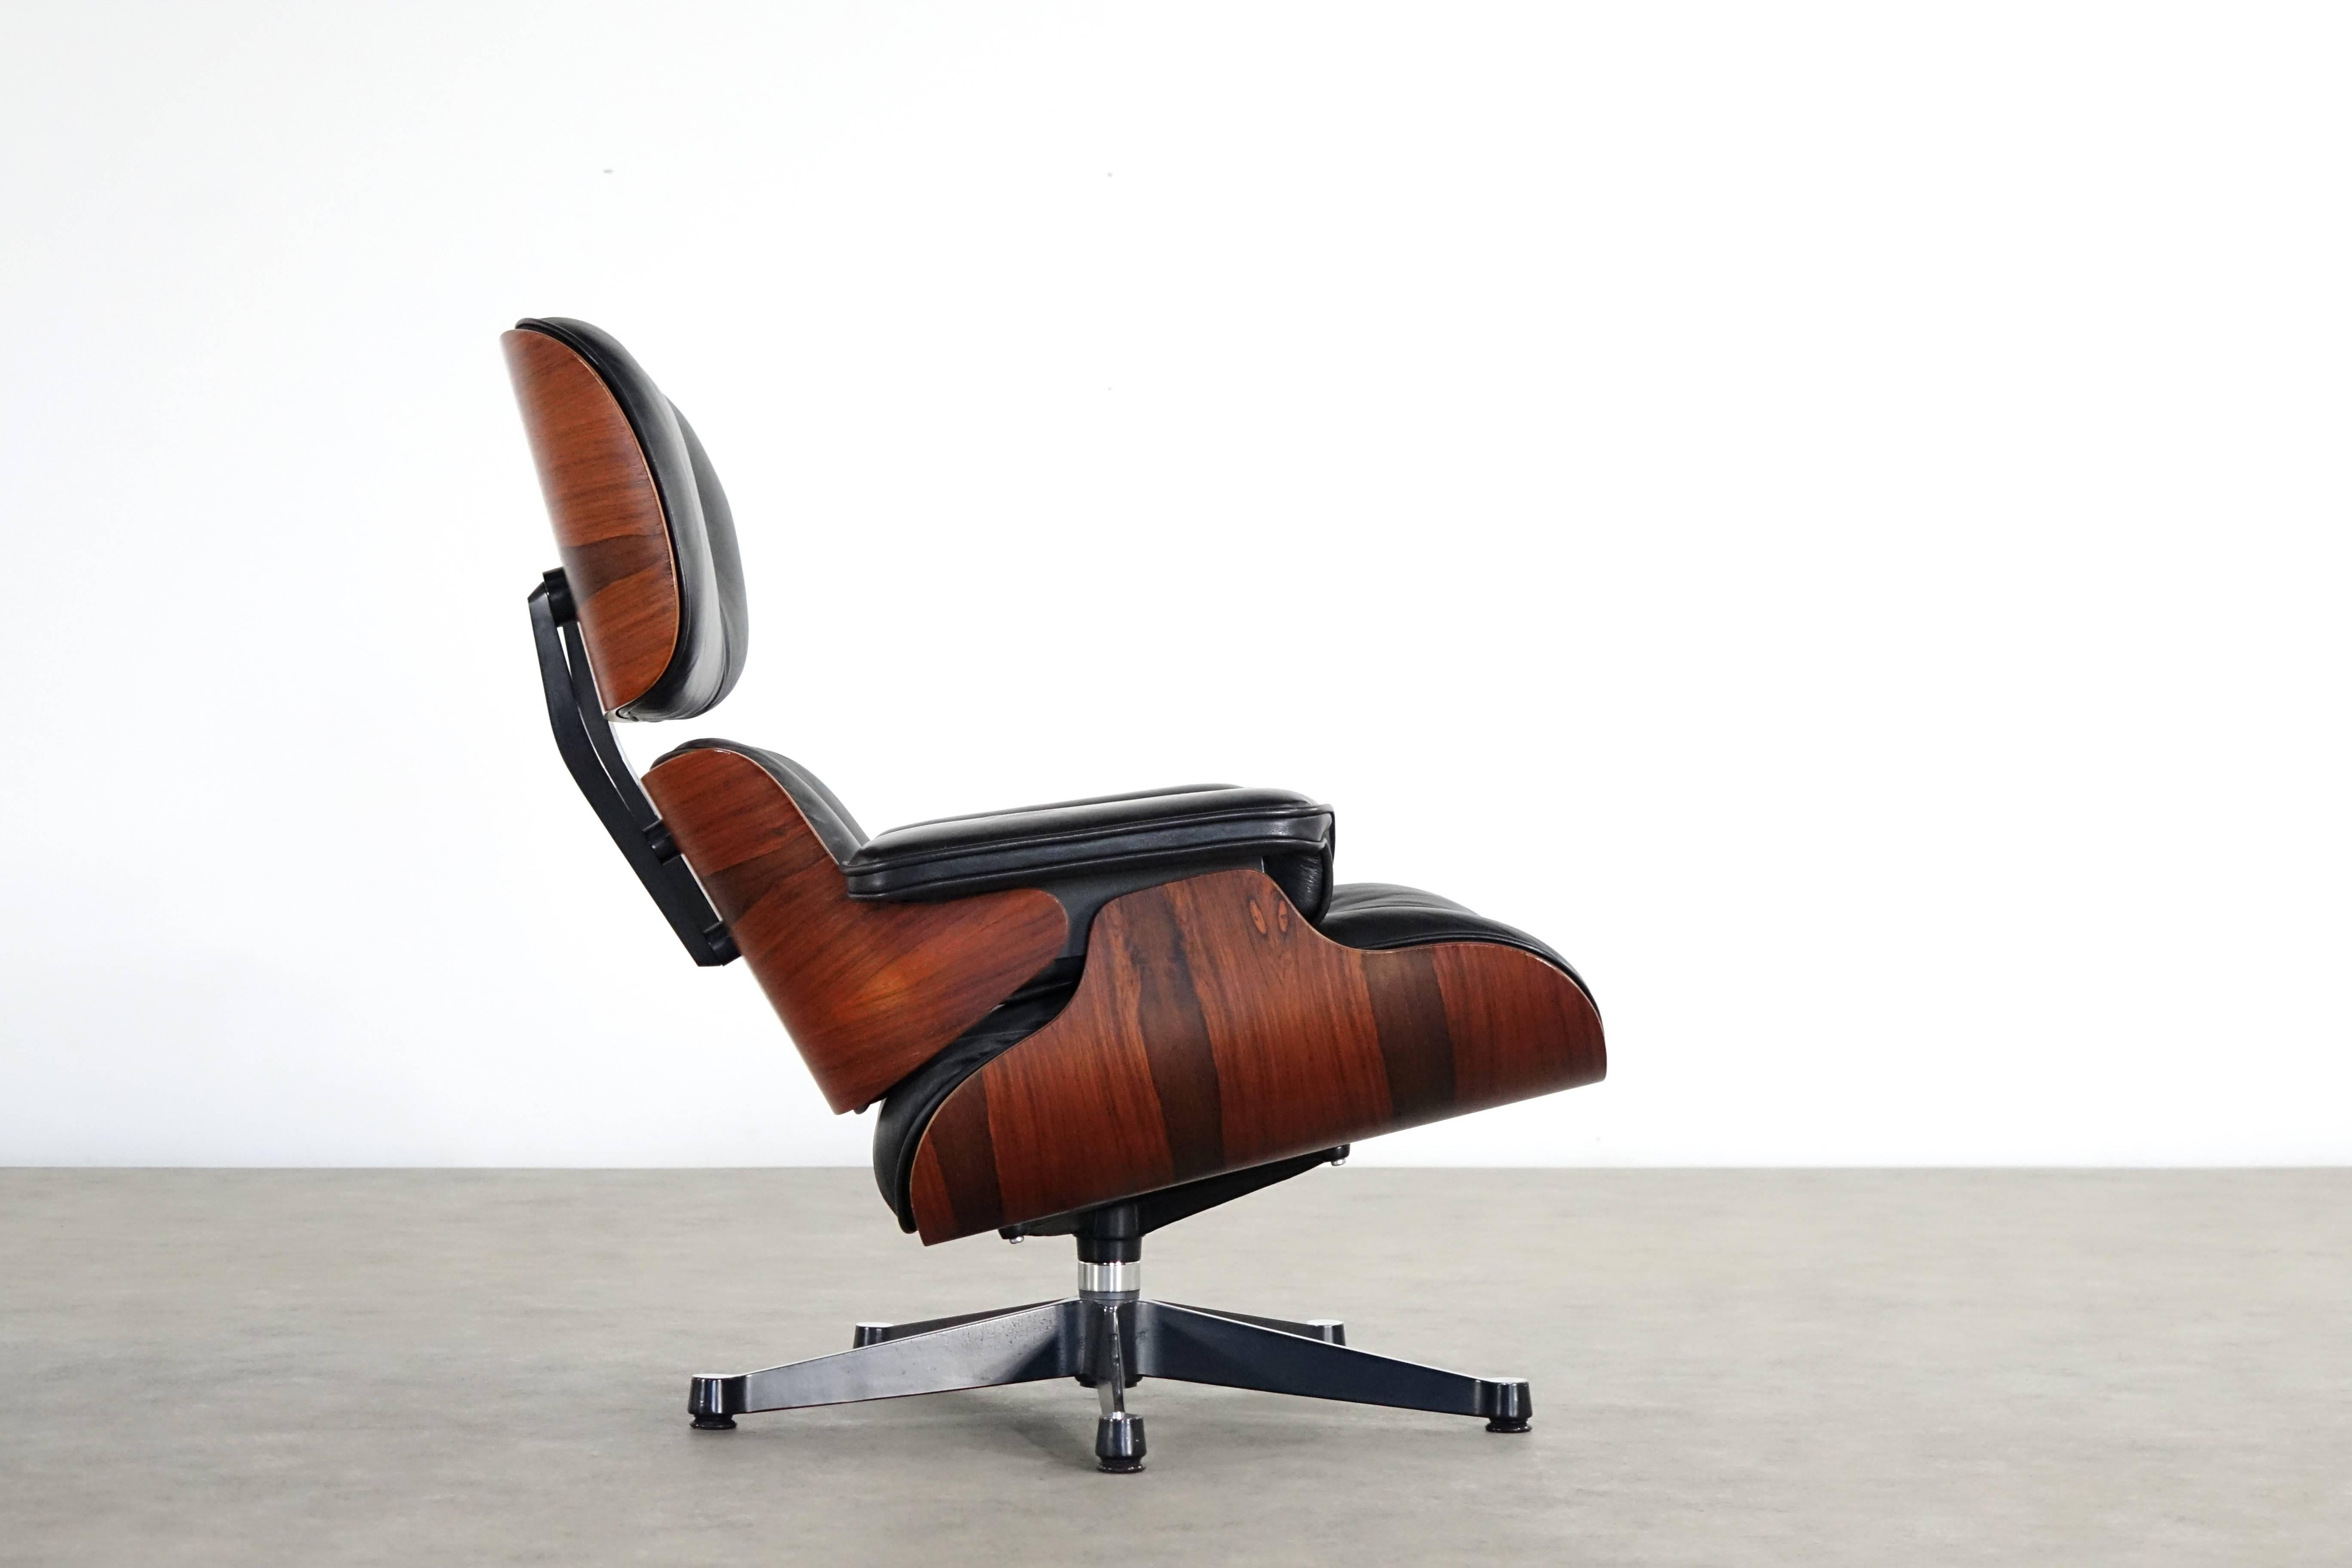 Vitra Chalres Eames : Vitra charles eames lounge chair and ottoman in rio rosewood herman